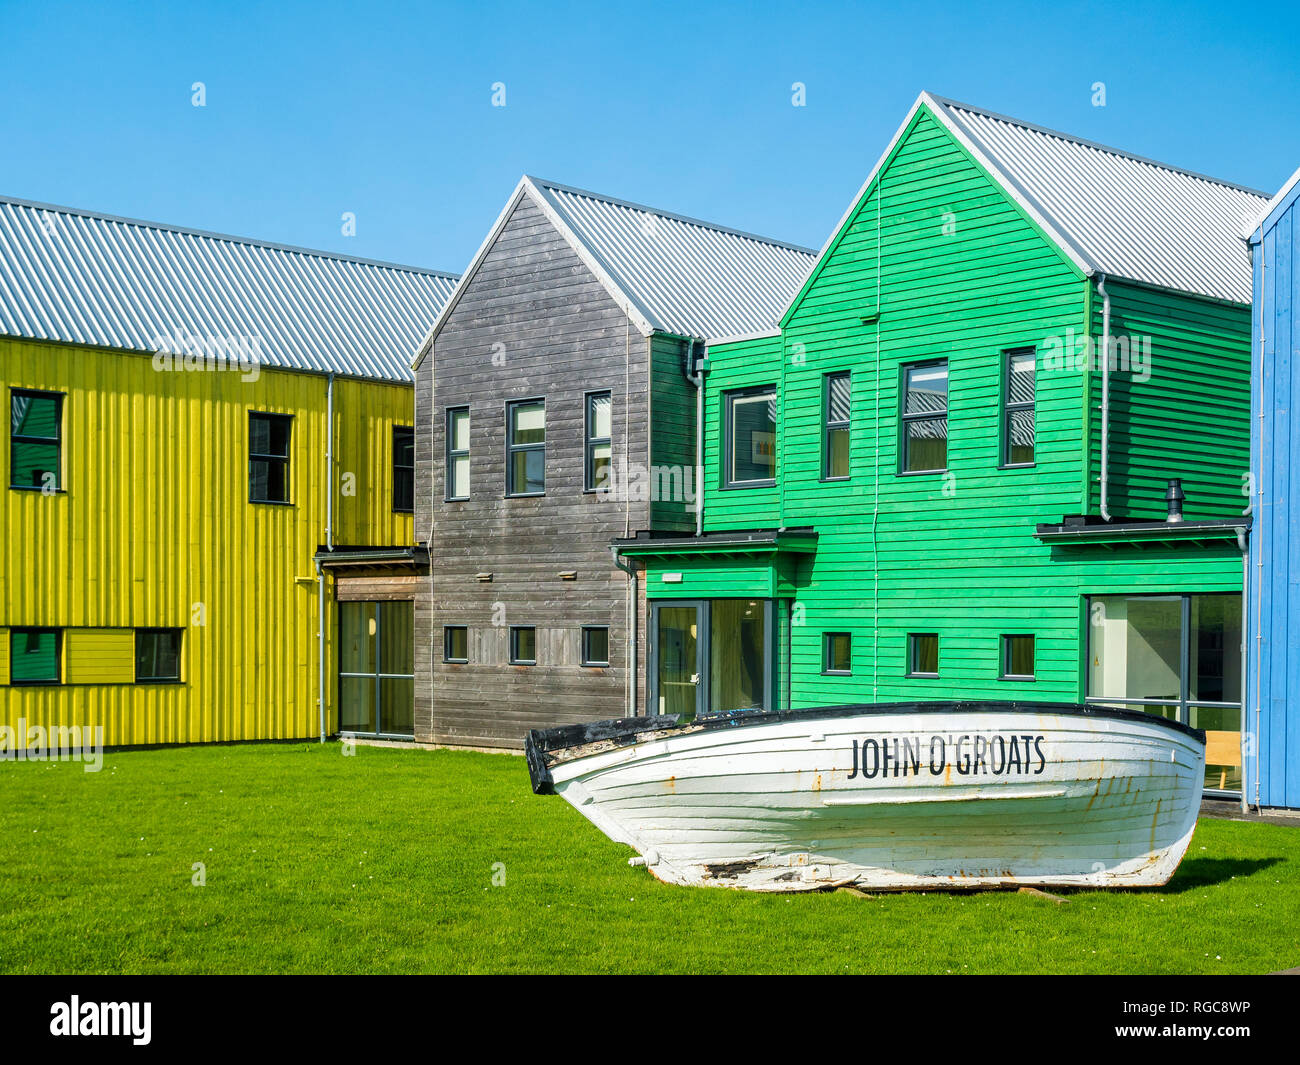 UK, Scotland, Highland, Caithness, John O'Groats, colorful houses and boat - Stock Image